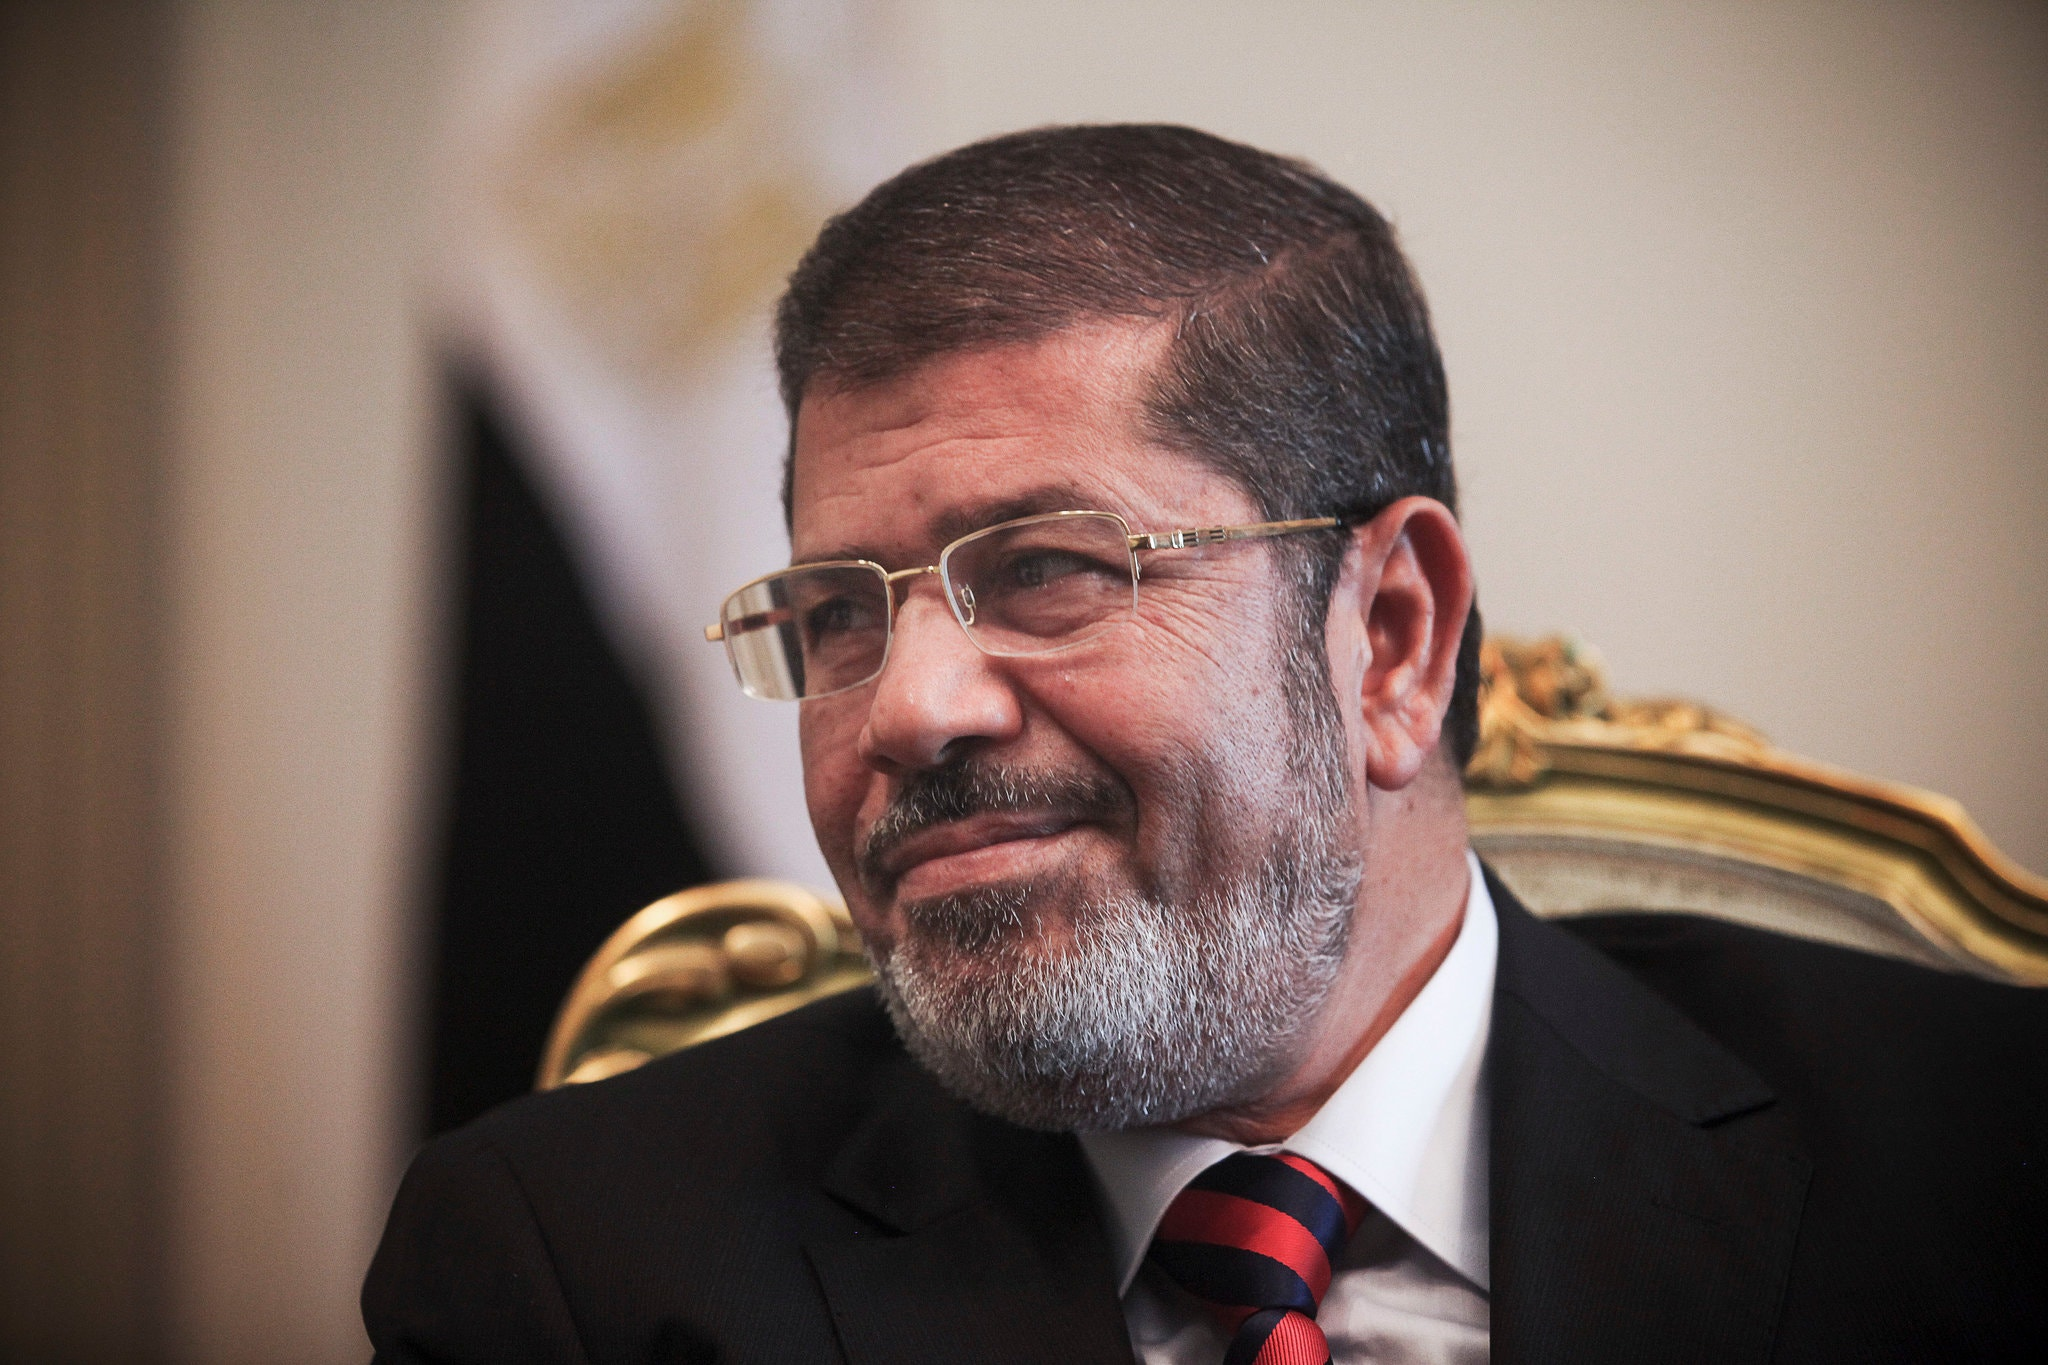 Mohamed Morsi Died in a Soundproof Cage